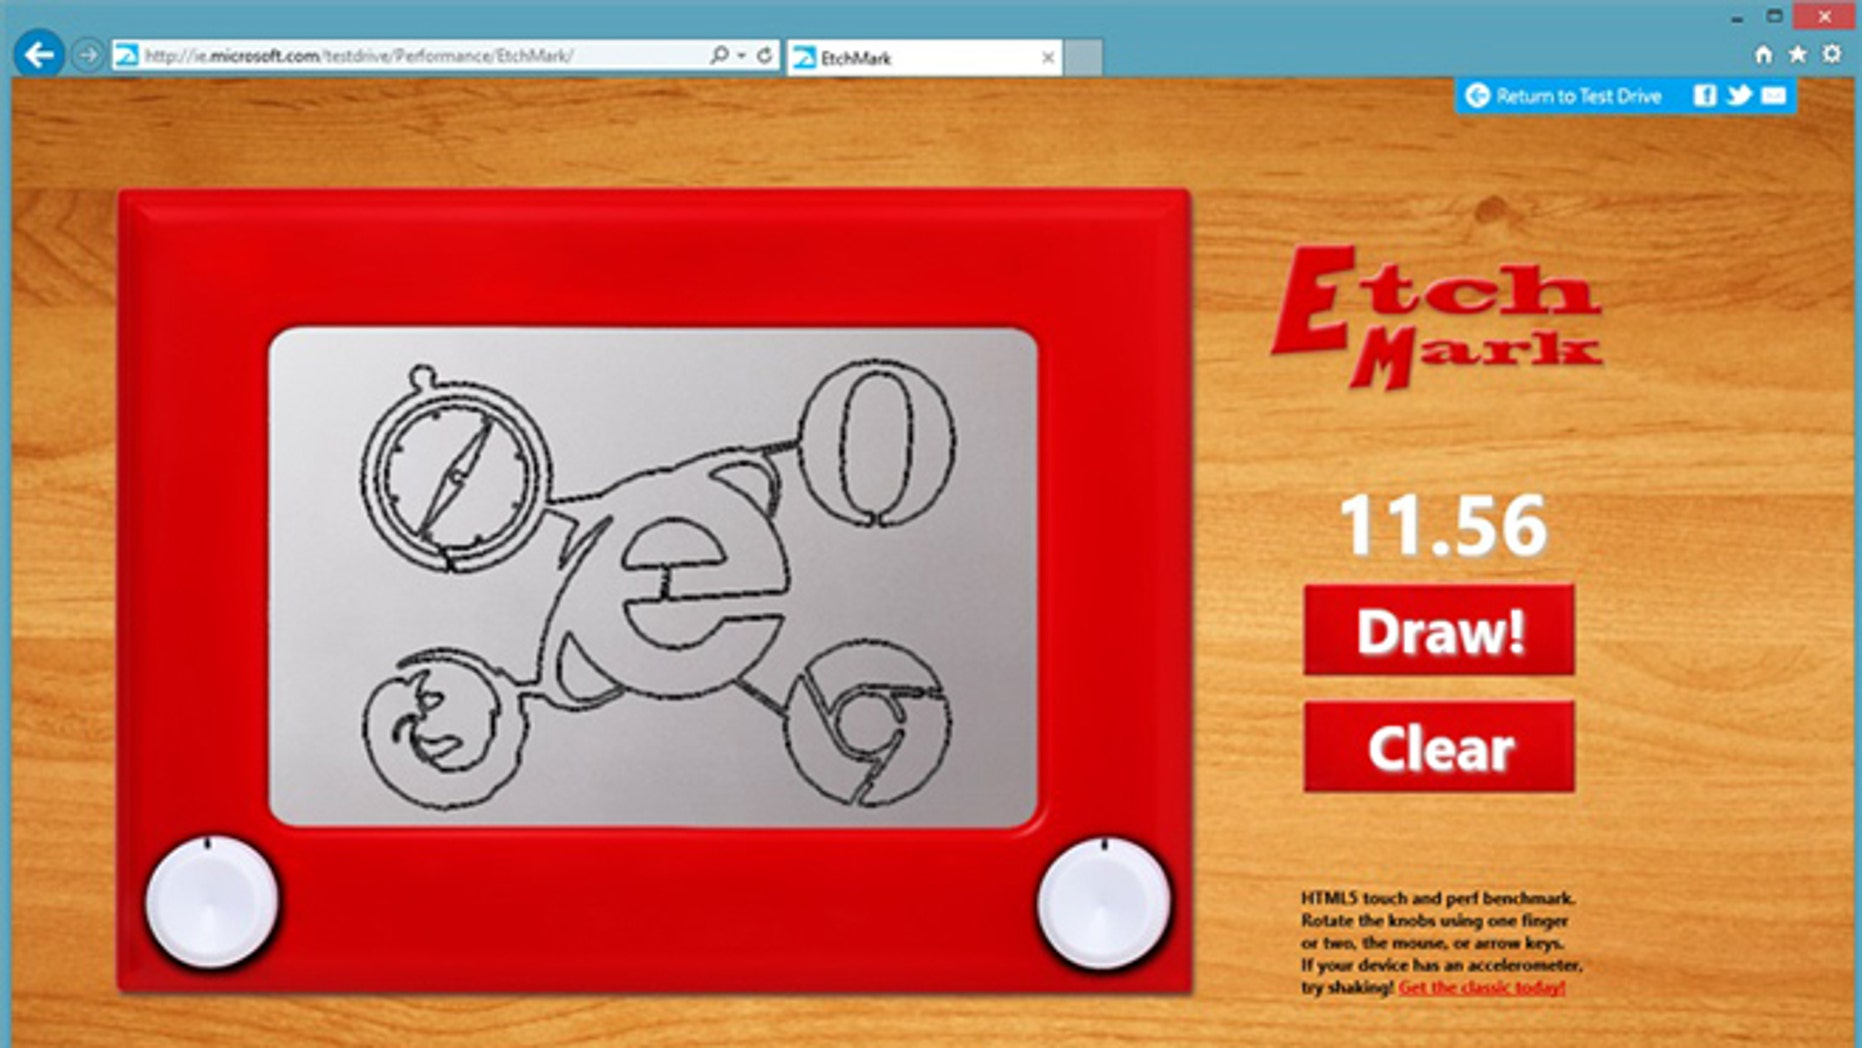 EtchMark is a new test drive demo from Microsoft that's an entertaining HTML5 retro-drawing experience.